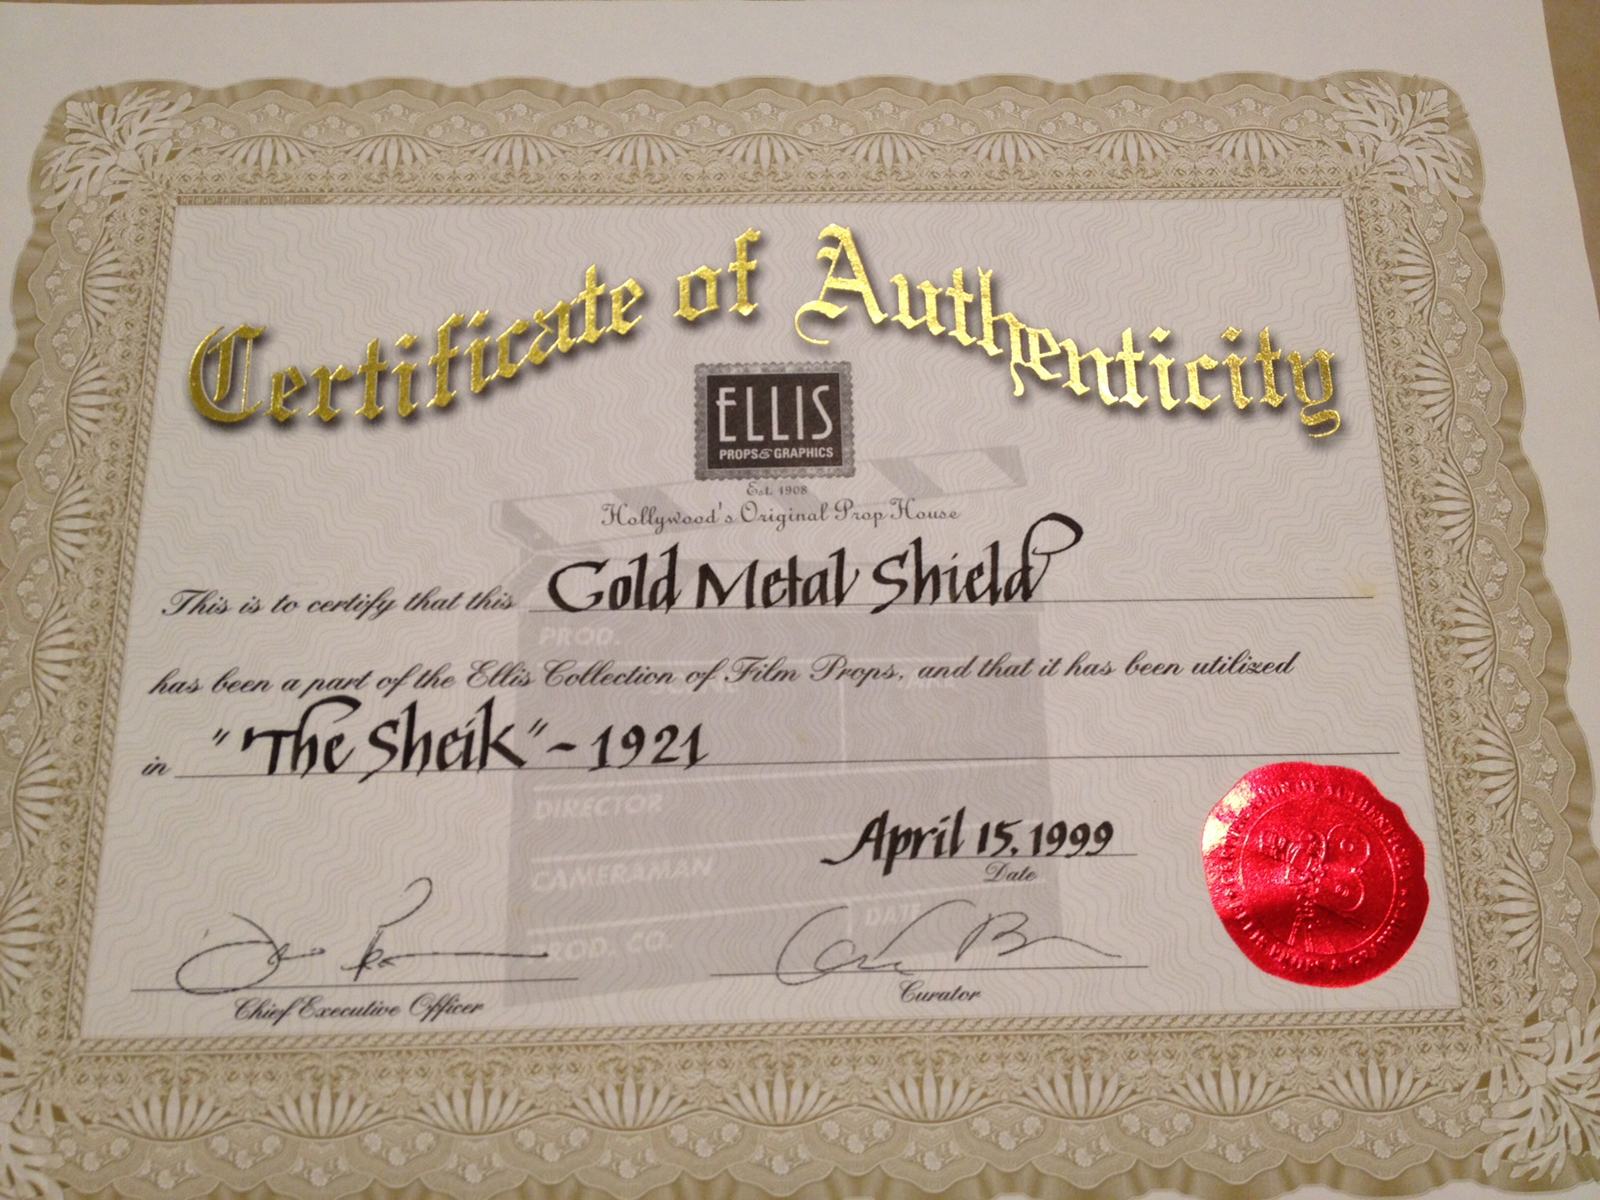 Revisiting Ellis Props & Graphics – Certificates of Authenticity (COAs) Assigned to TV and Movie Props, Set Pieces, & Costumes Circulating in the Marketplace